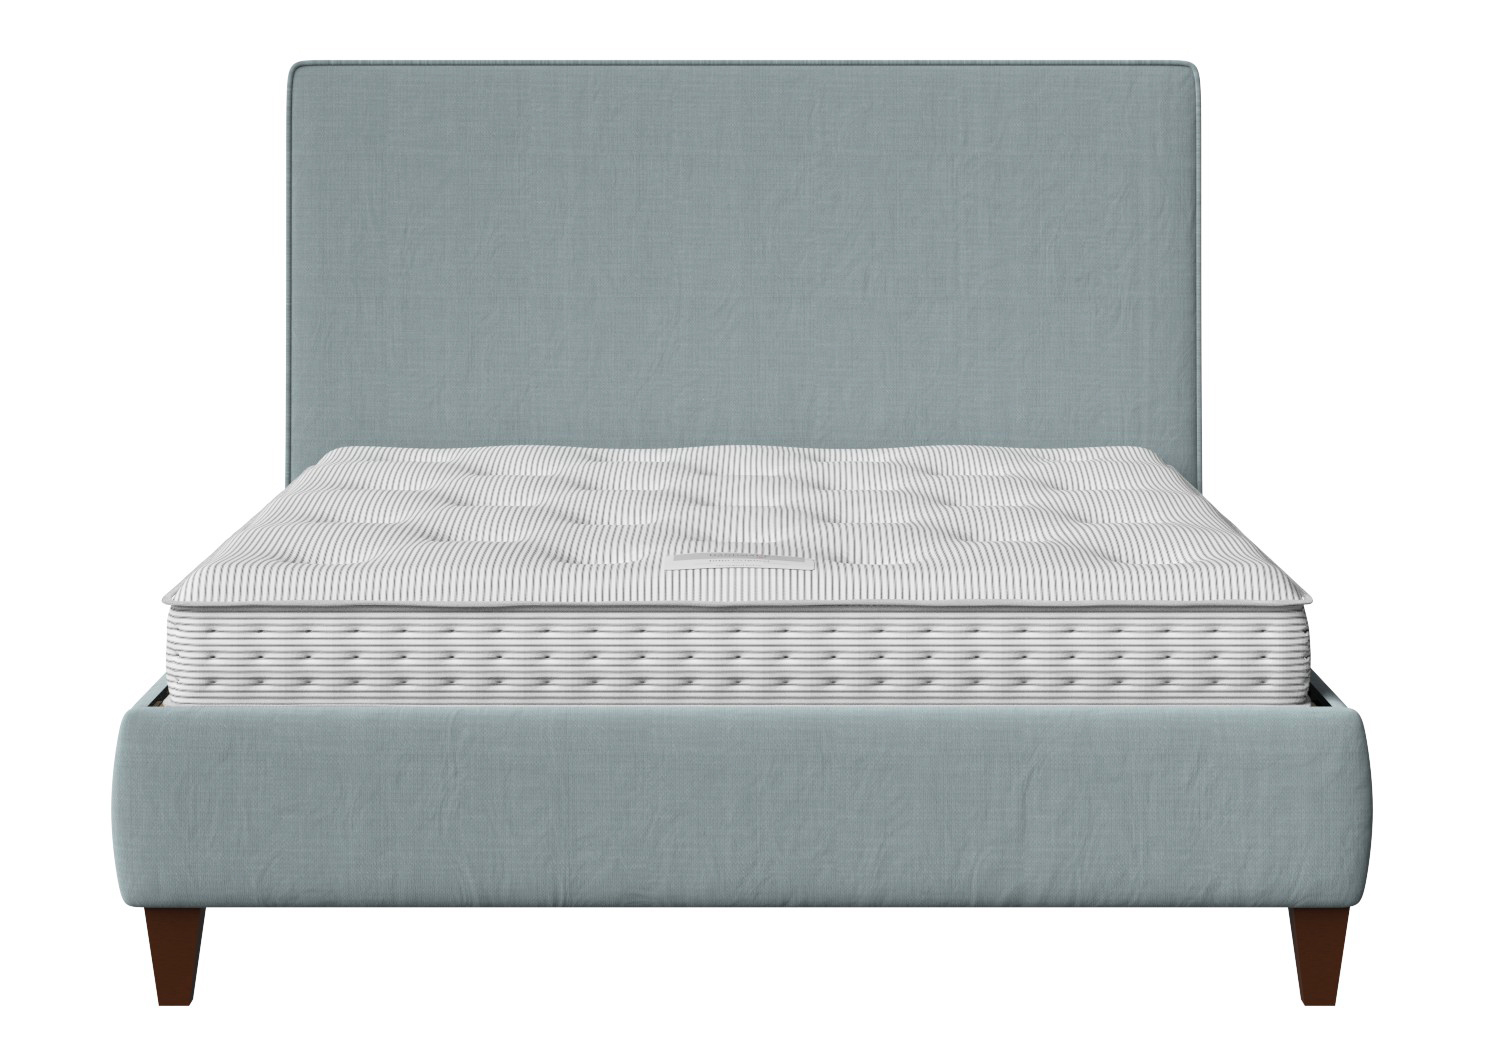 Yushan Upholstered Bed in Wedgewood fabric with piping shown with Juno 1 mattress